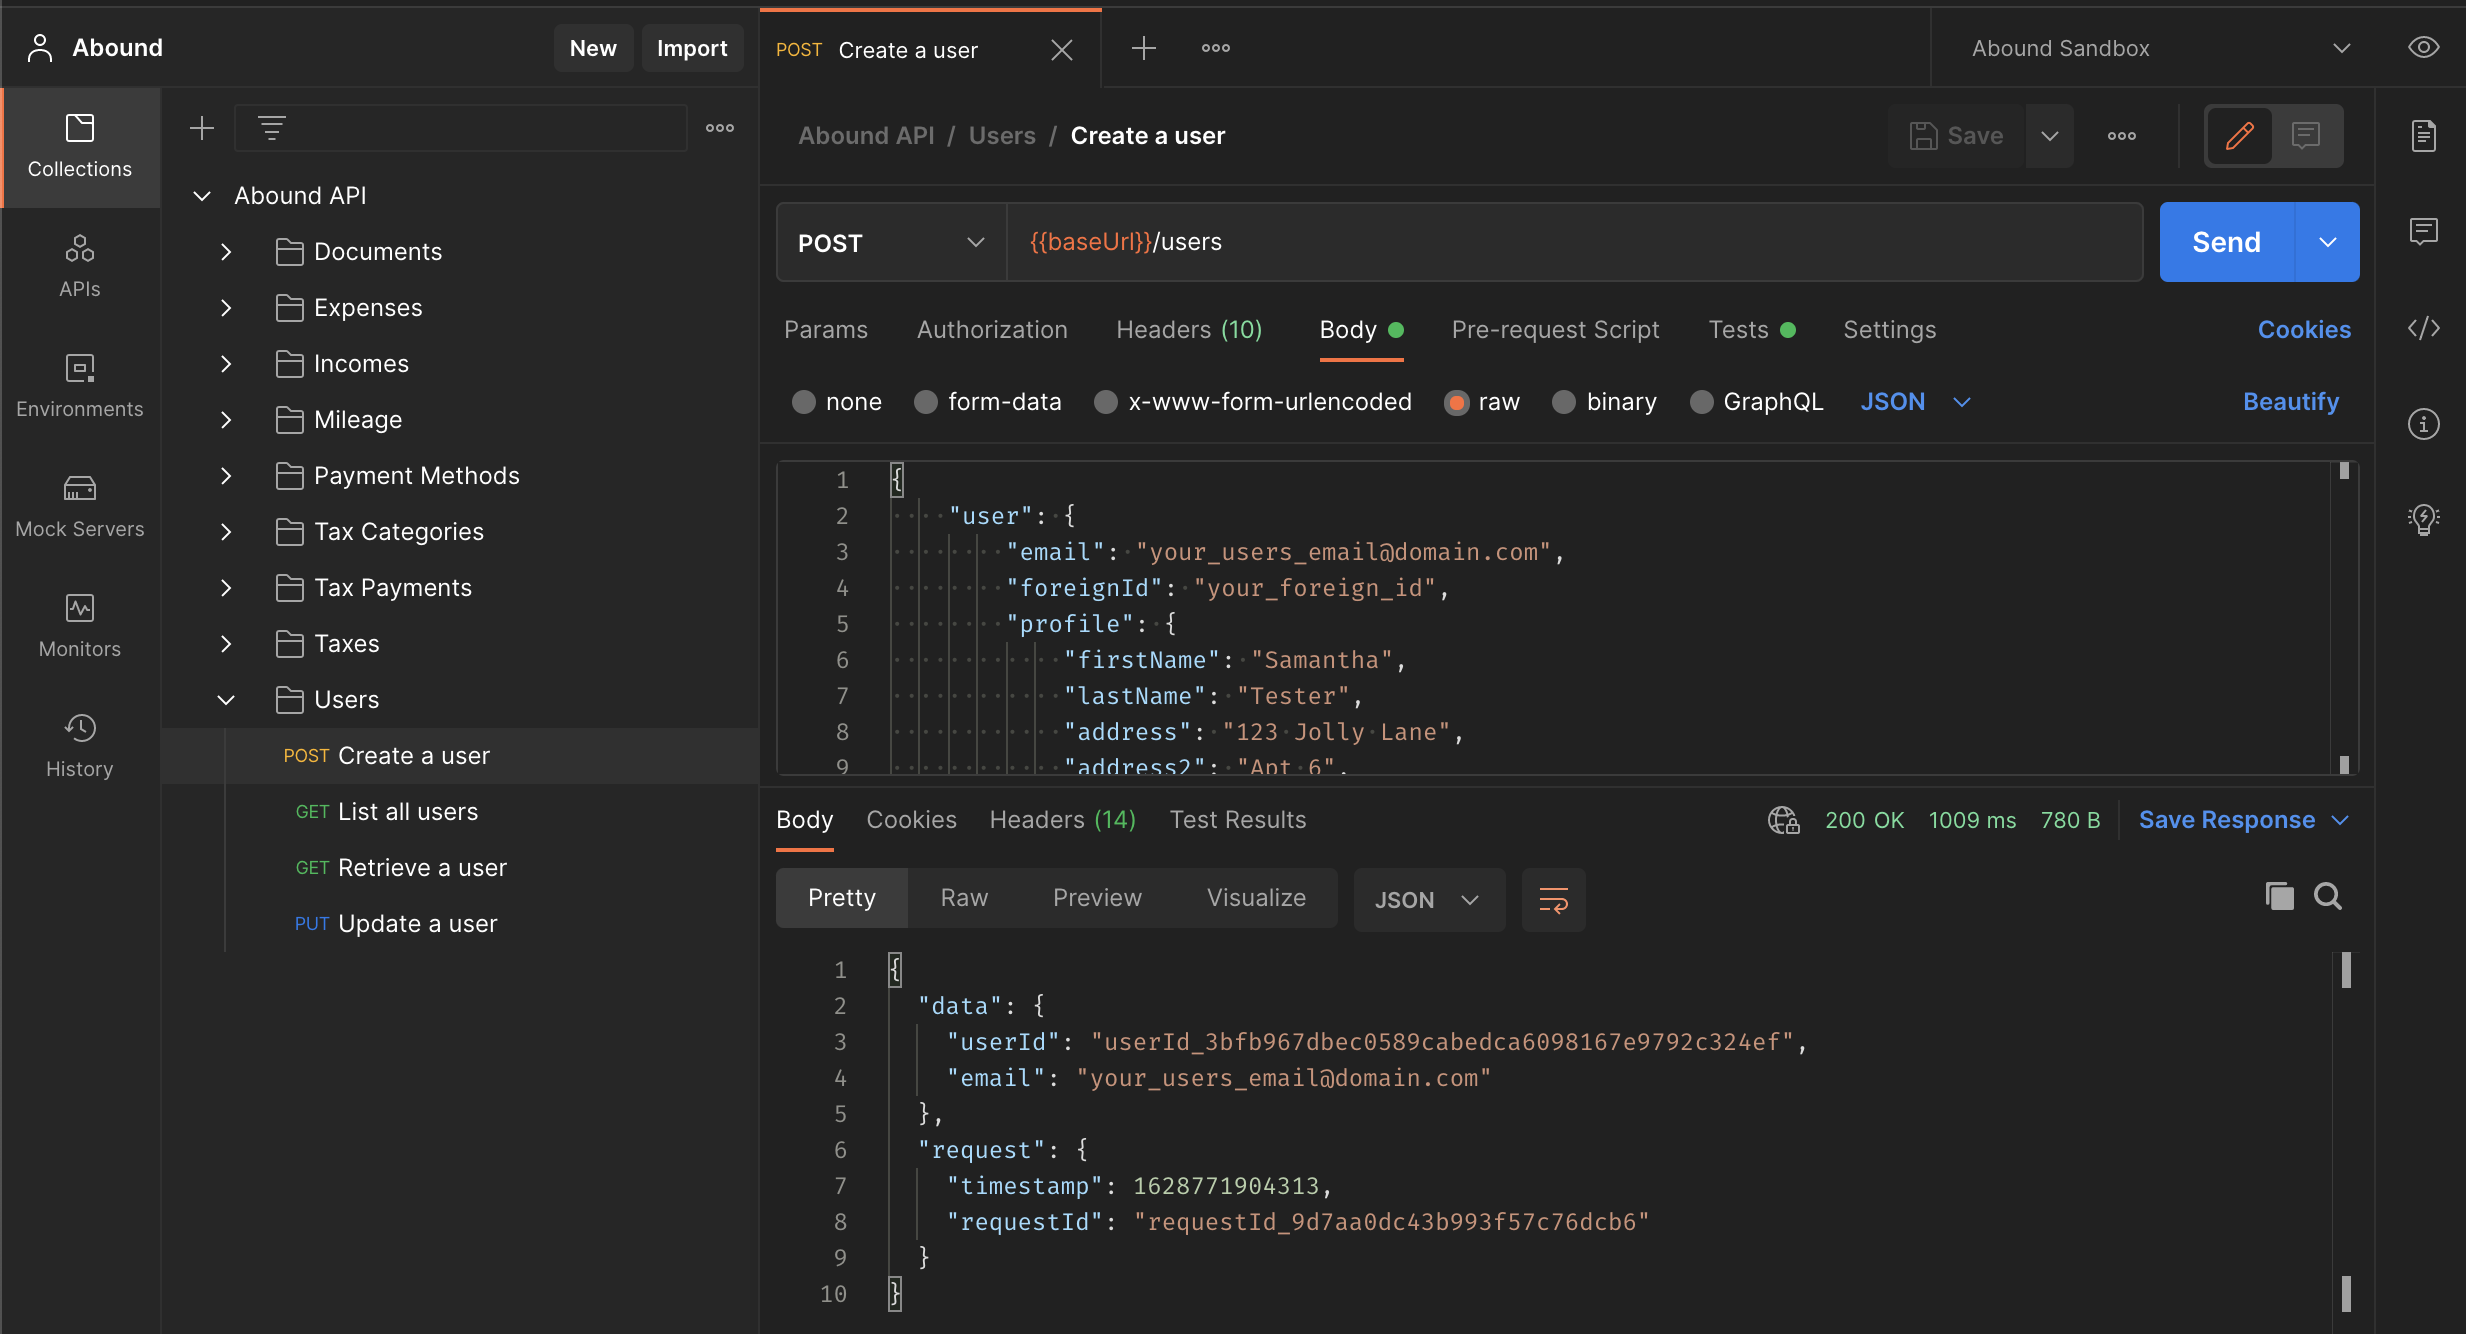 Creating a user with the Abound API Postman collection